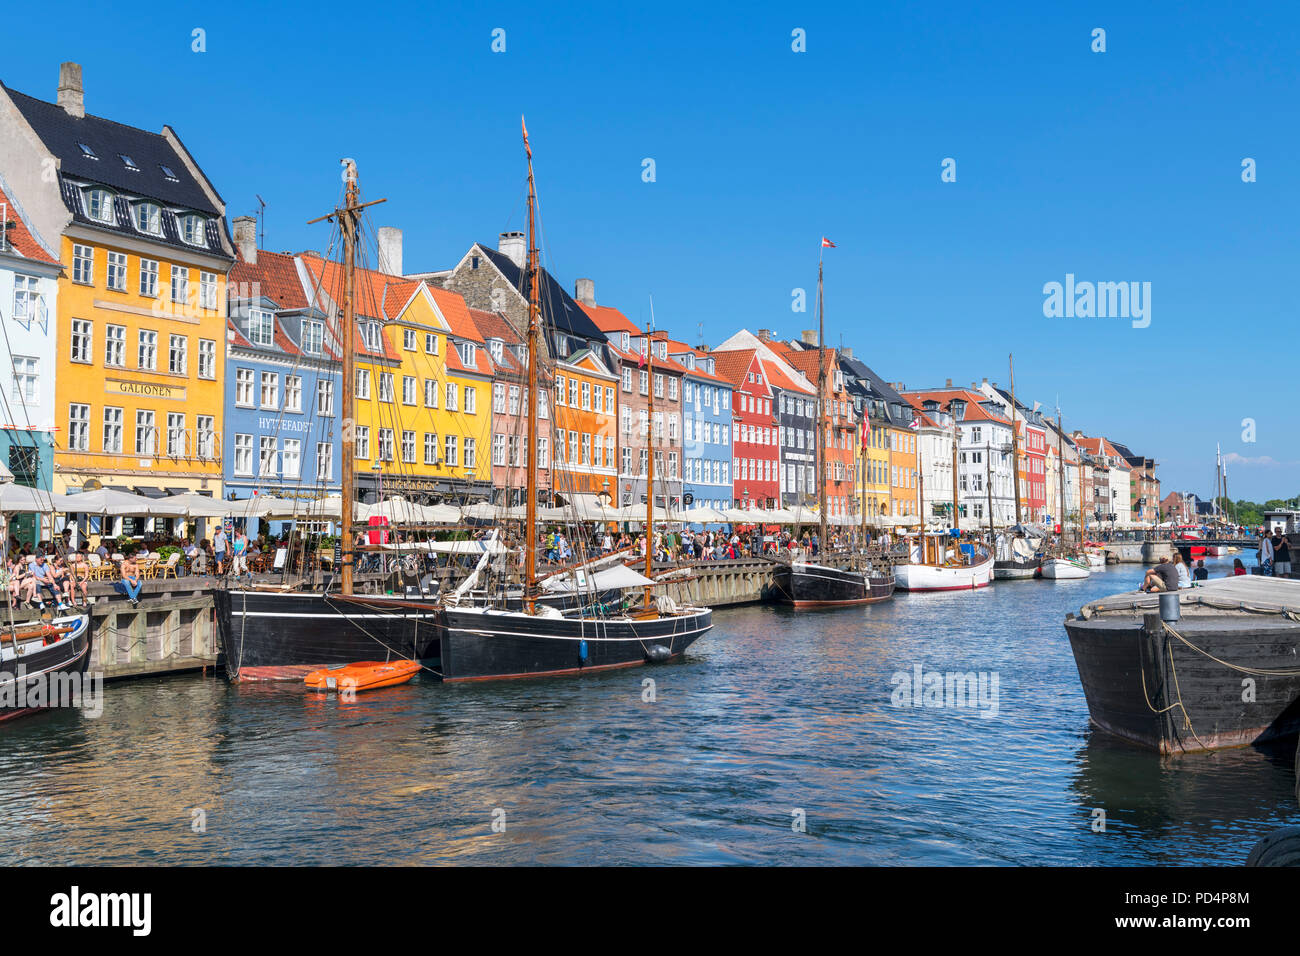 Historic 17th and 18th century buildings along the Nyhavn canal, Copenhagen, Denmark - Stock Image